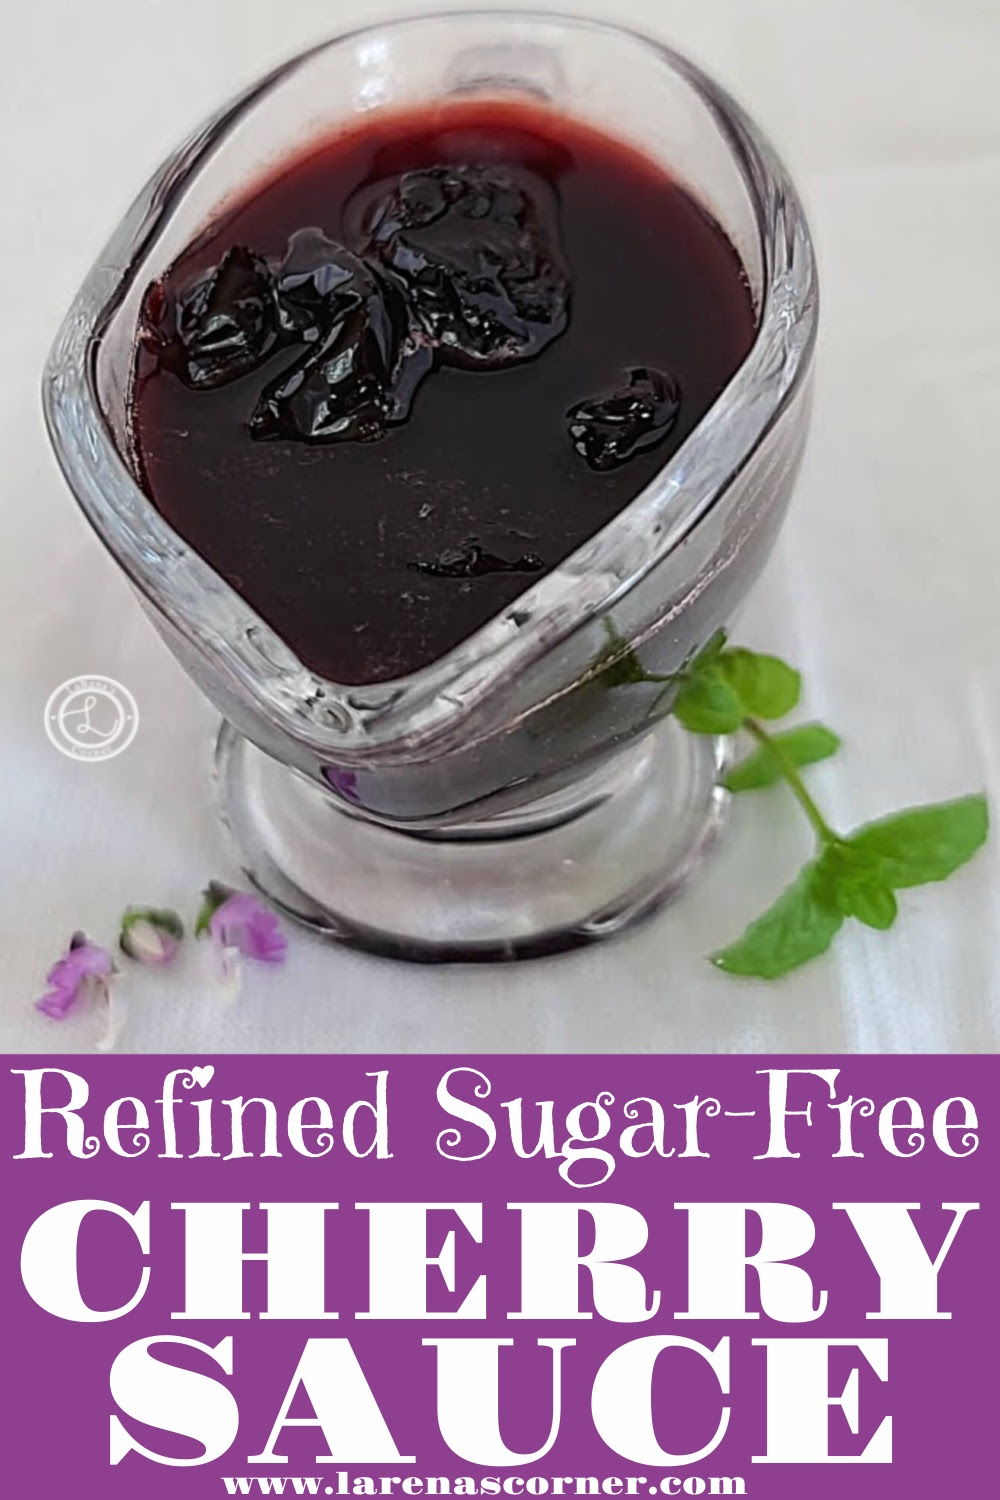 Refined Sugar-Free Cherry Sauce